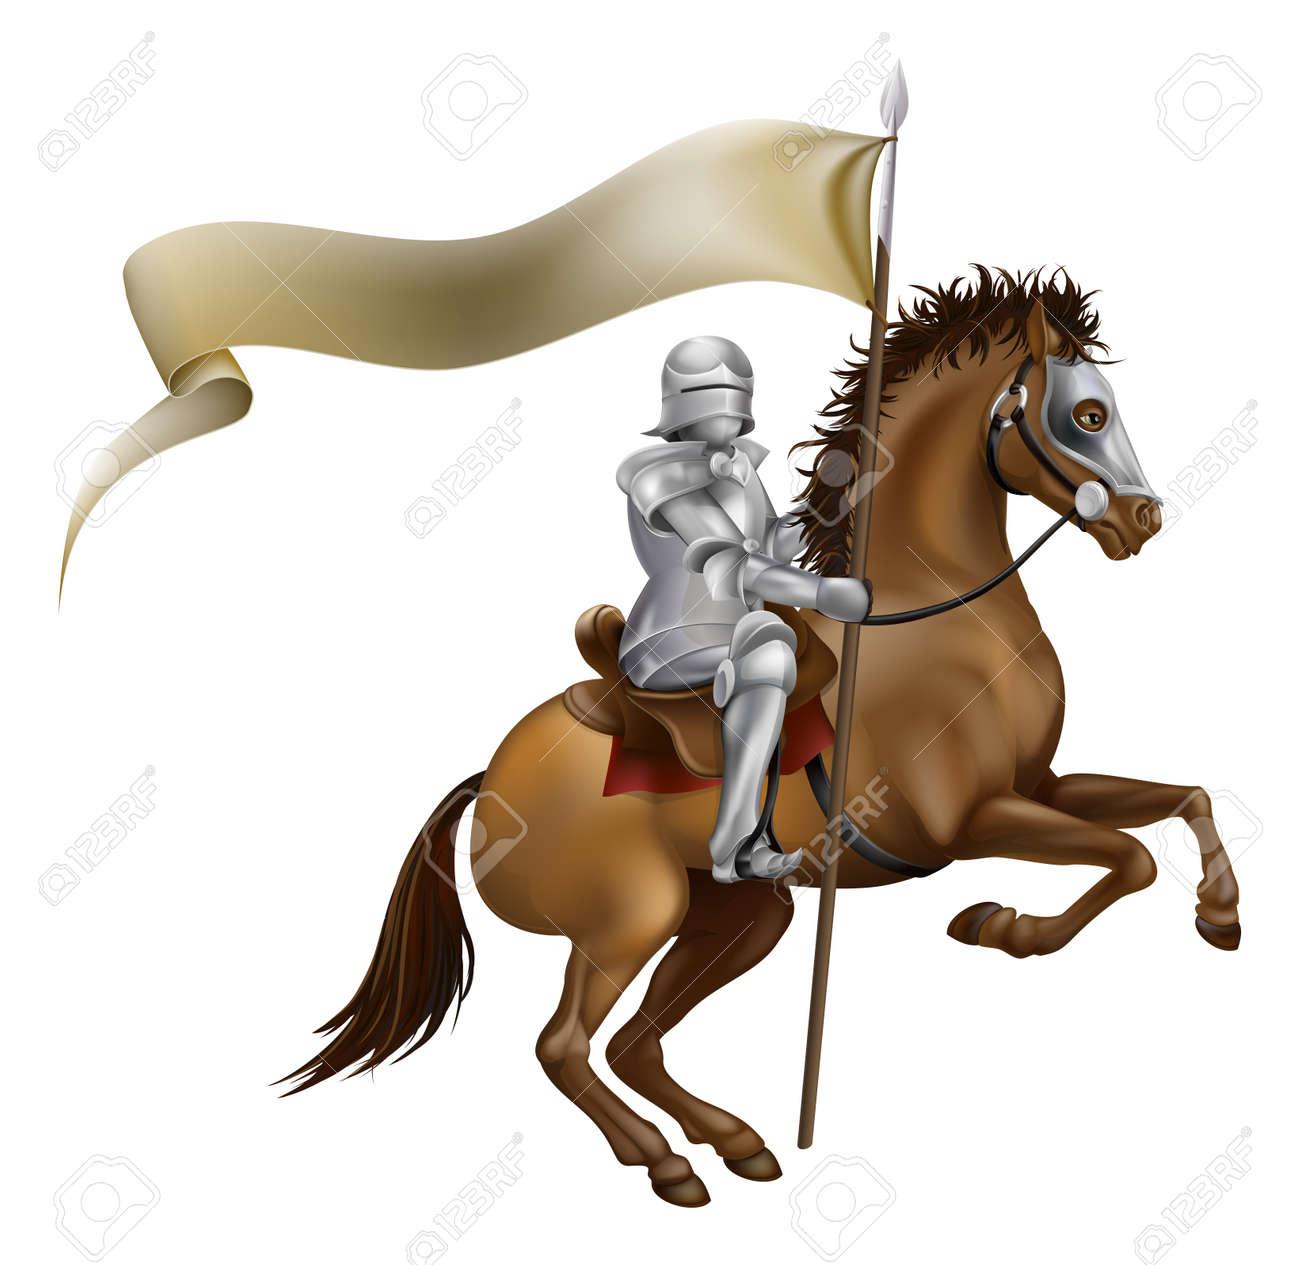 Knight On Horse: A Knight With Spear And Banner Mounted On A Powerful Horse